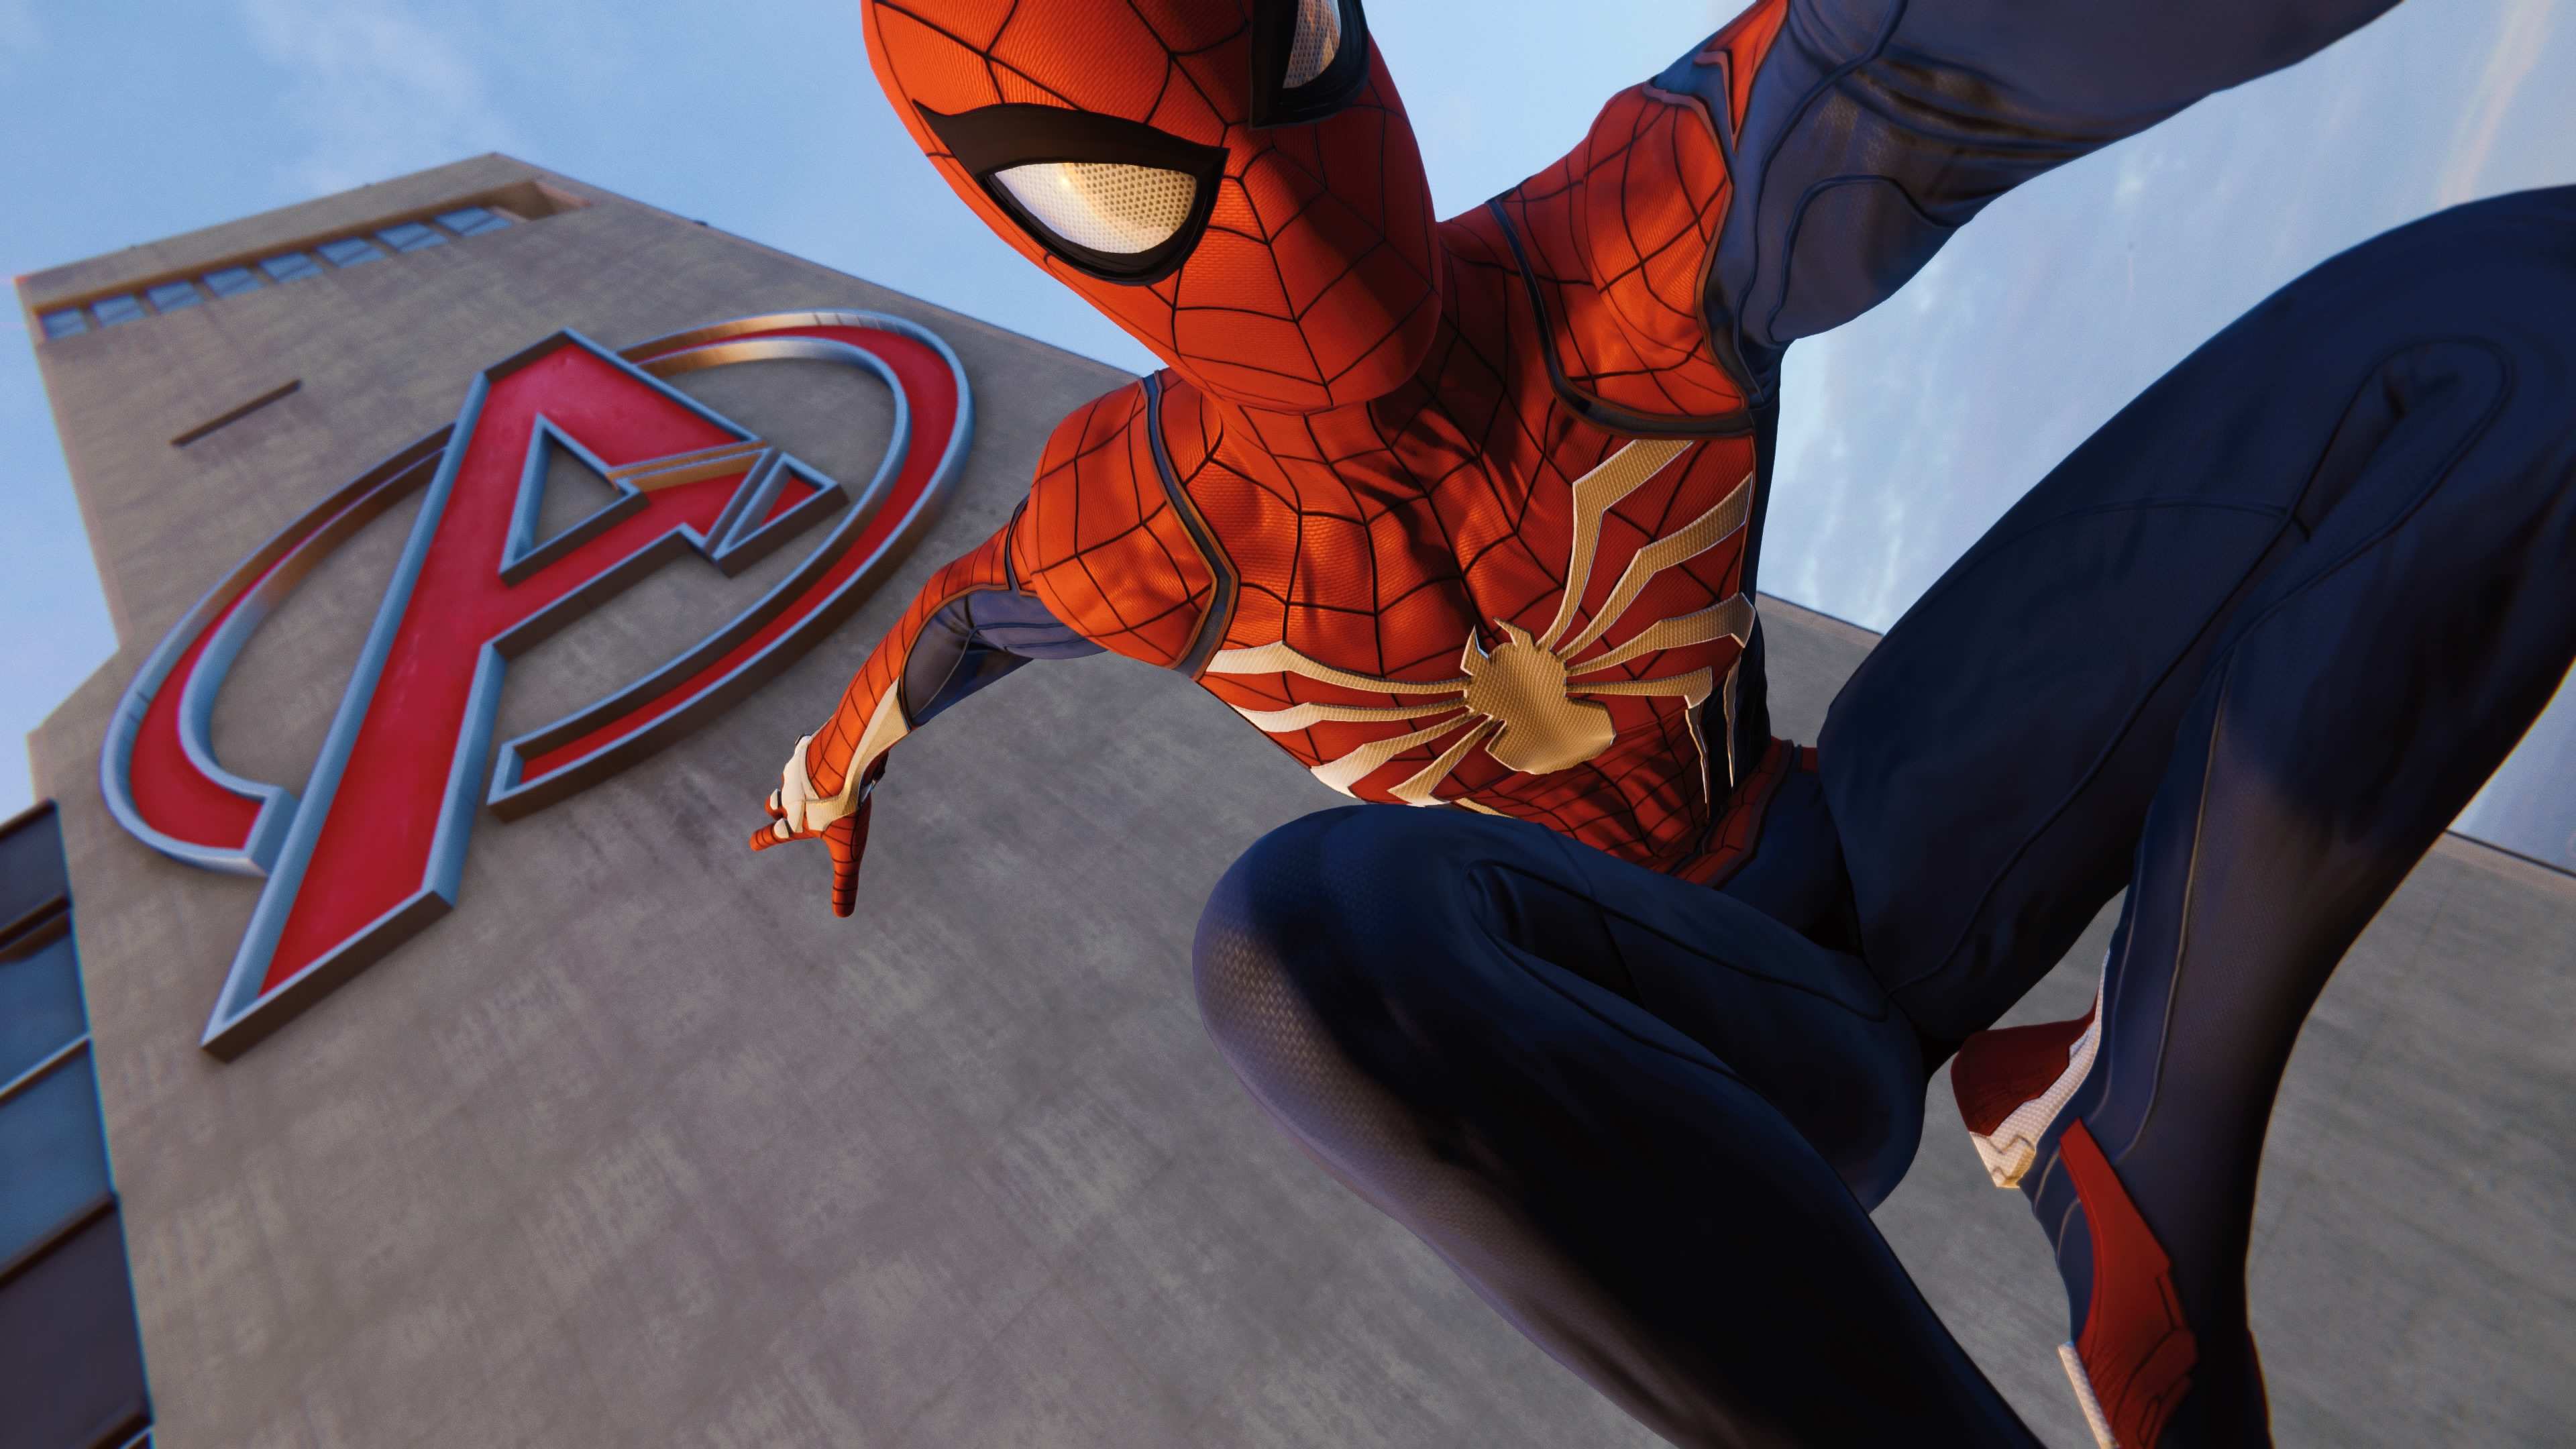 ps4 pro spiderman avengers tower 1537692541 - Ps4 Pro Spiderman Avengers Tower - superheroes wallpapers, spiderman wallpapers, spiderman ps4 wallpapers, ps4 games wallpapers, ps games wallpapers, hd-wallpapers, games wallpapers, 4k-wallpapers